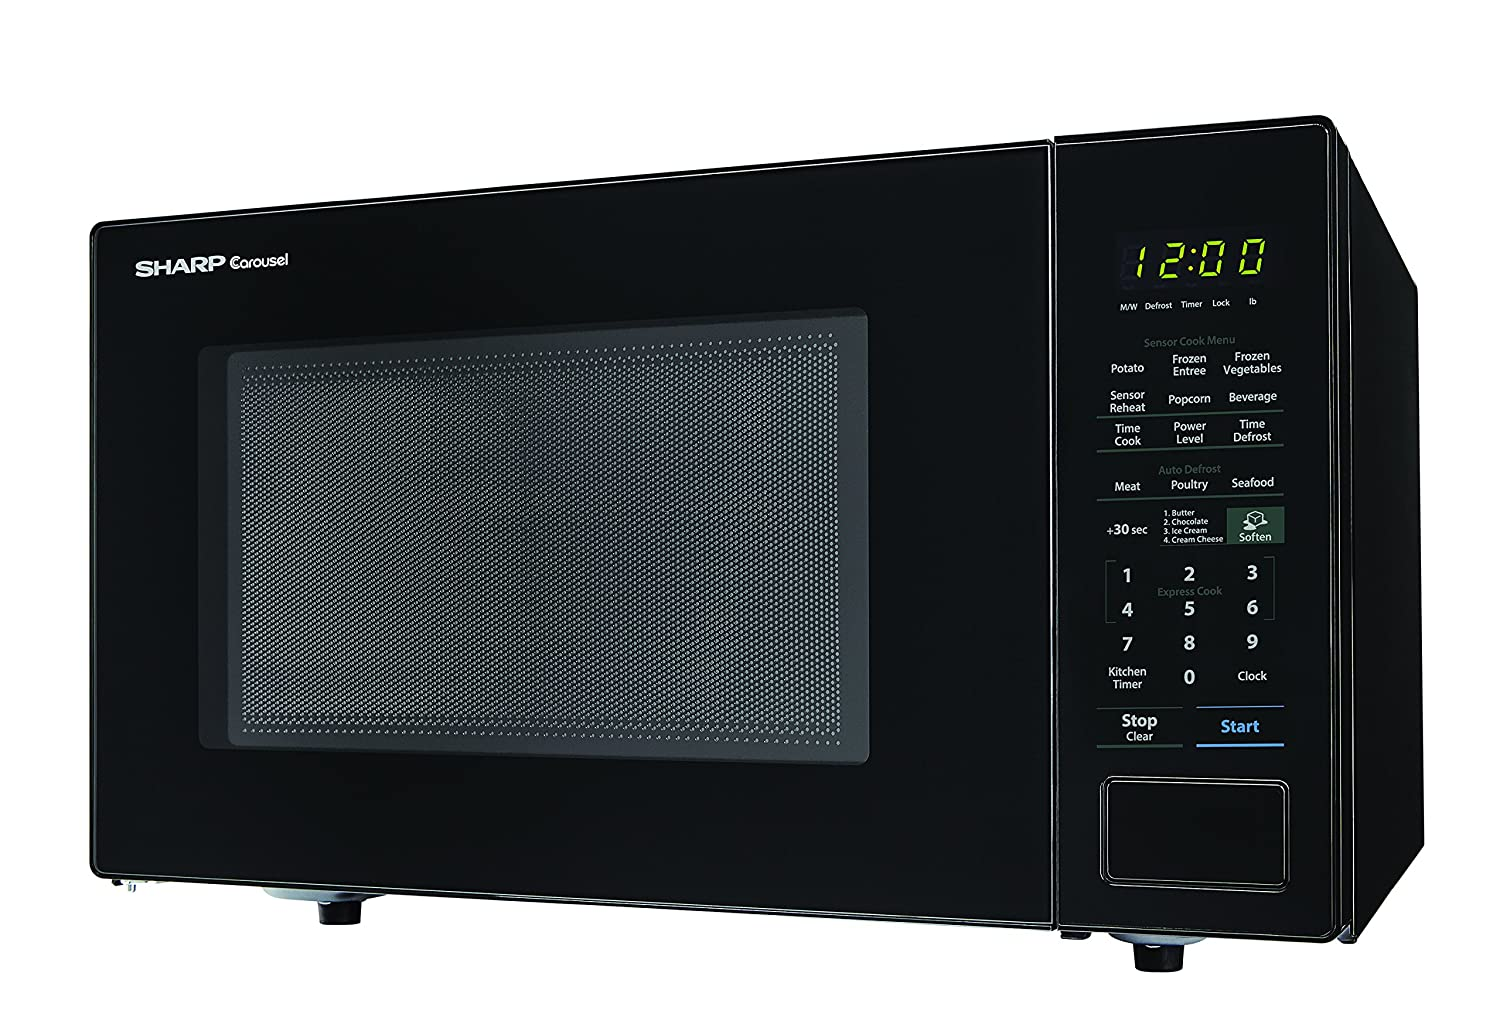 Amazon.com: Sharp Microwaves ZSMC1441CB Sharp 1, 000W Countertop Microwave  Oven, 1.4 Cubic Foot, Black: Kitchen & Dining